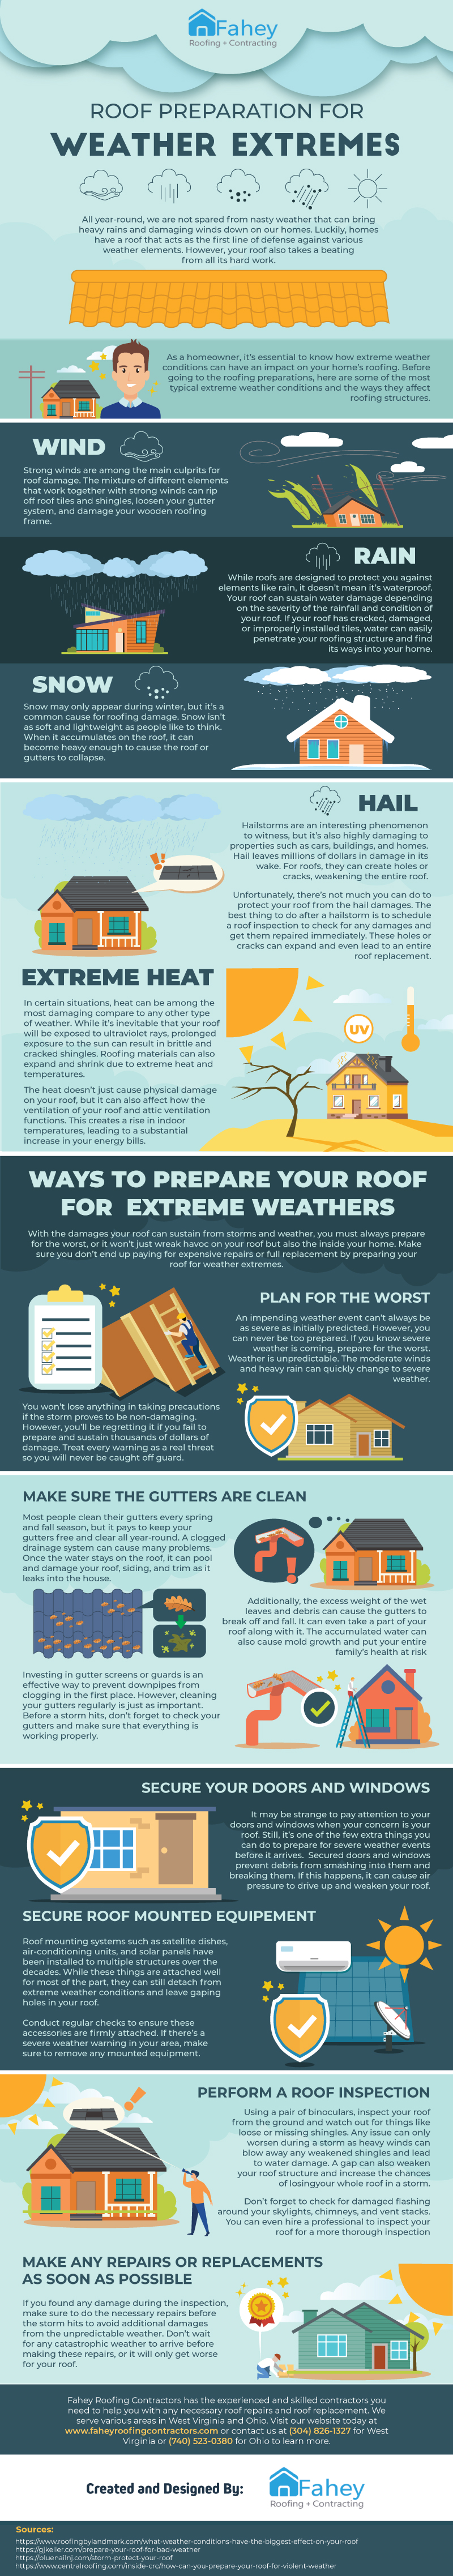 Roof Preparations For Weather Extremes Infographic